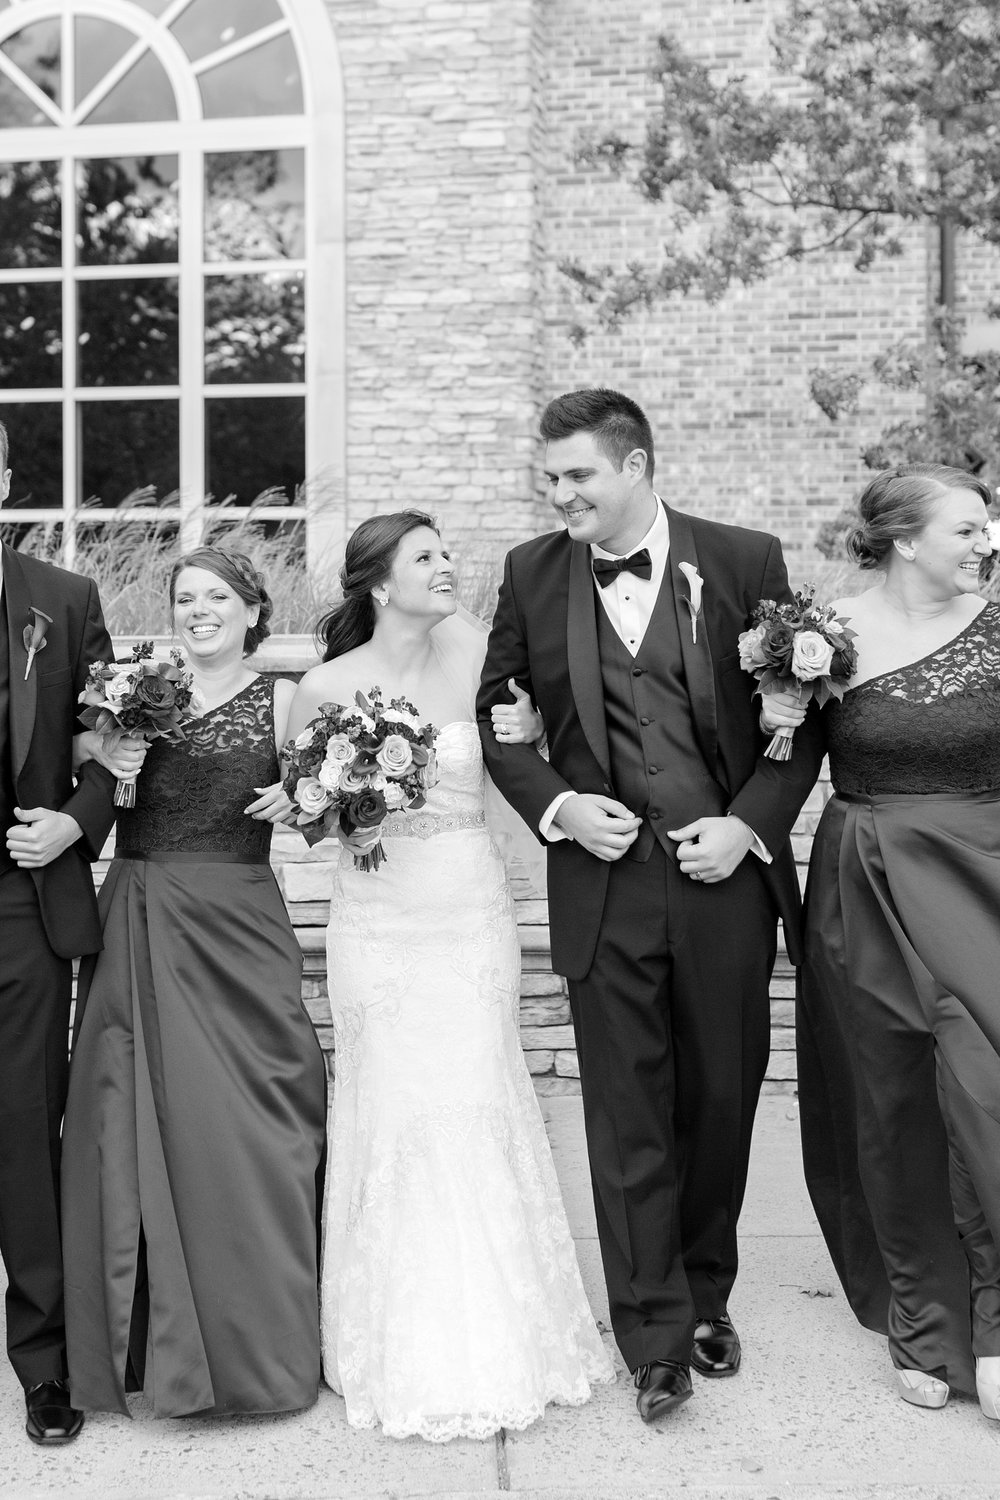 MacDonald 2. Bridal Party-789_anna grace photography leesburg virginia wedding photographer lansdowne resort wedding photo.jpg